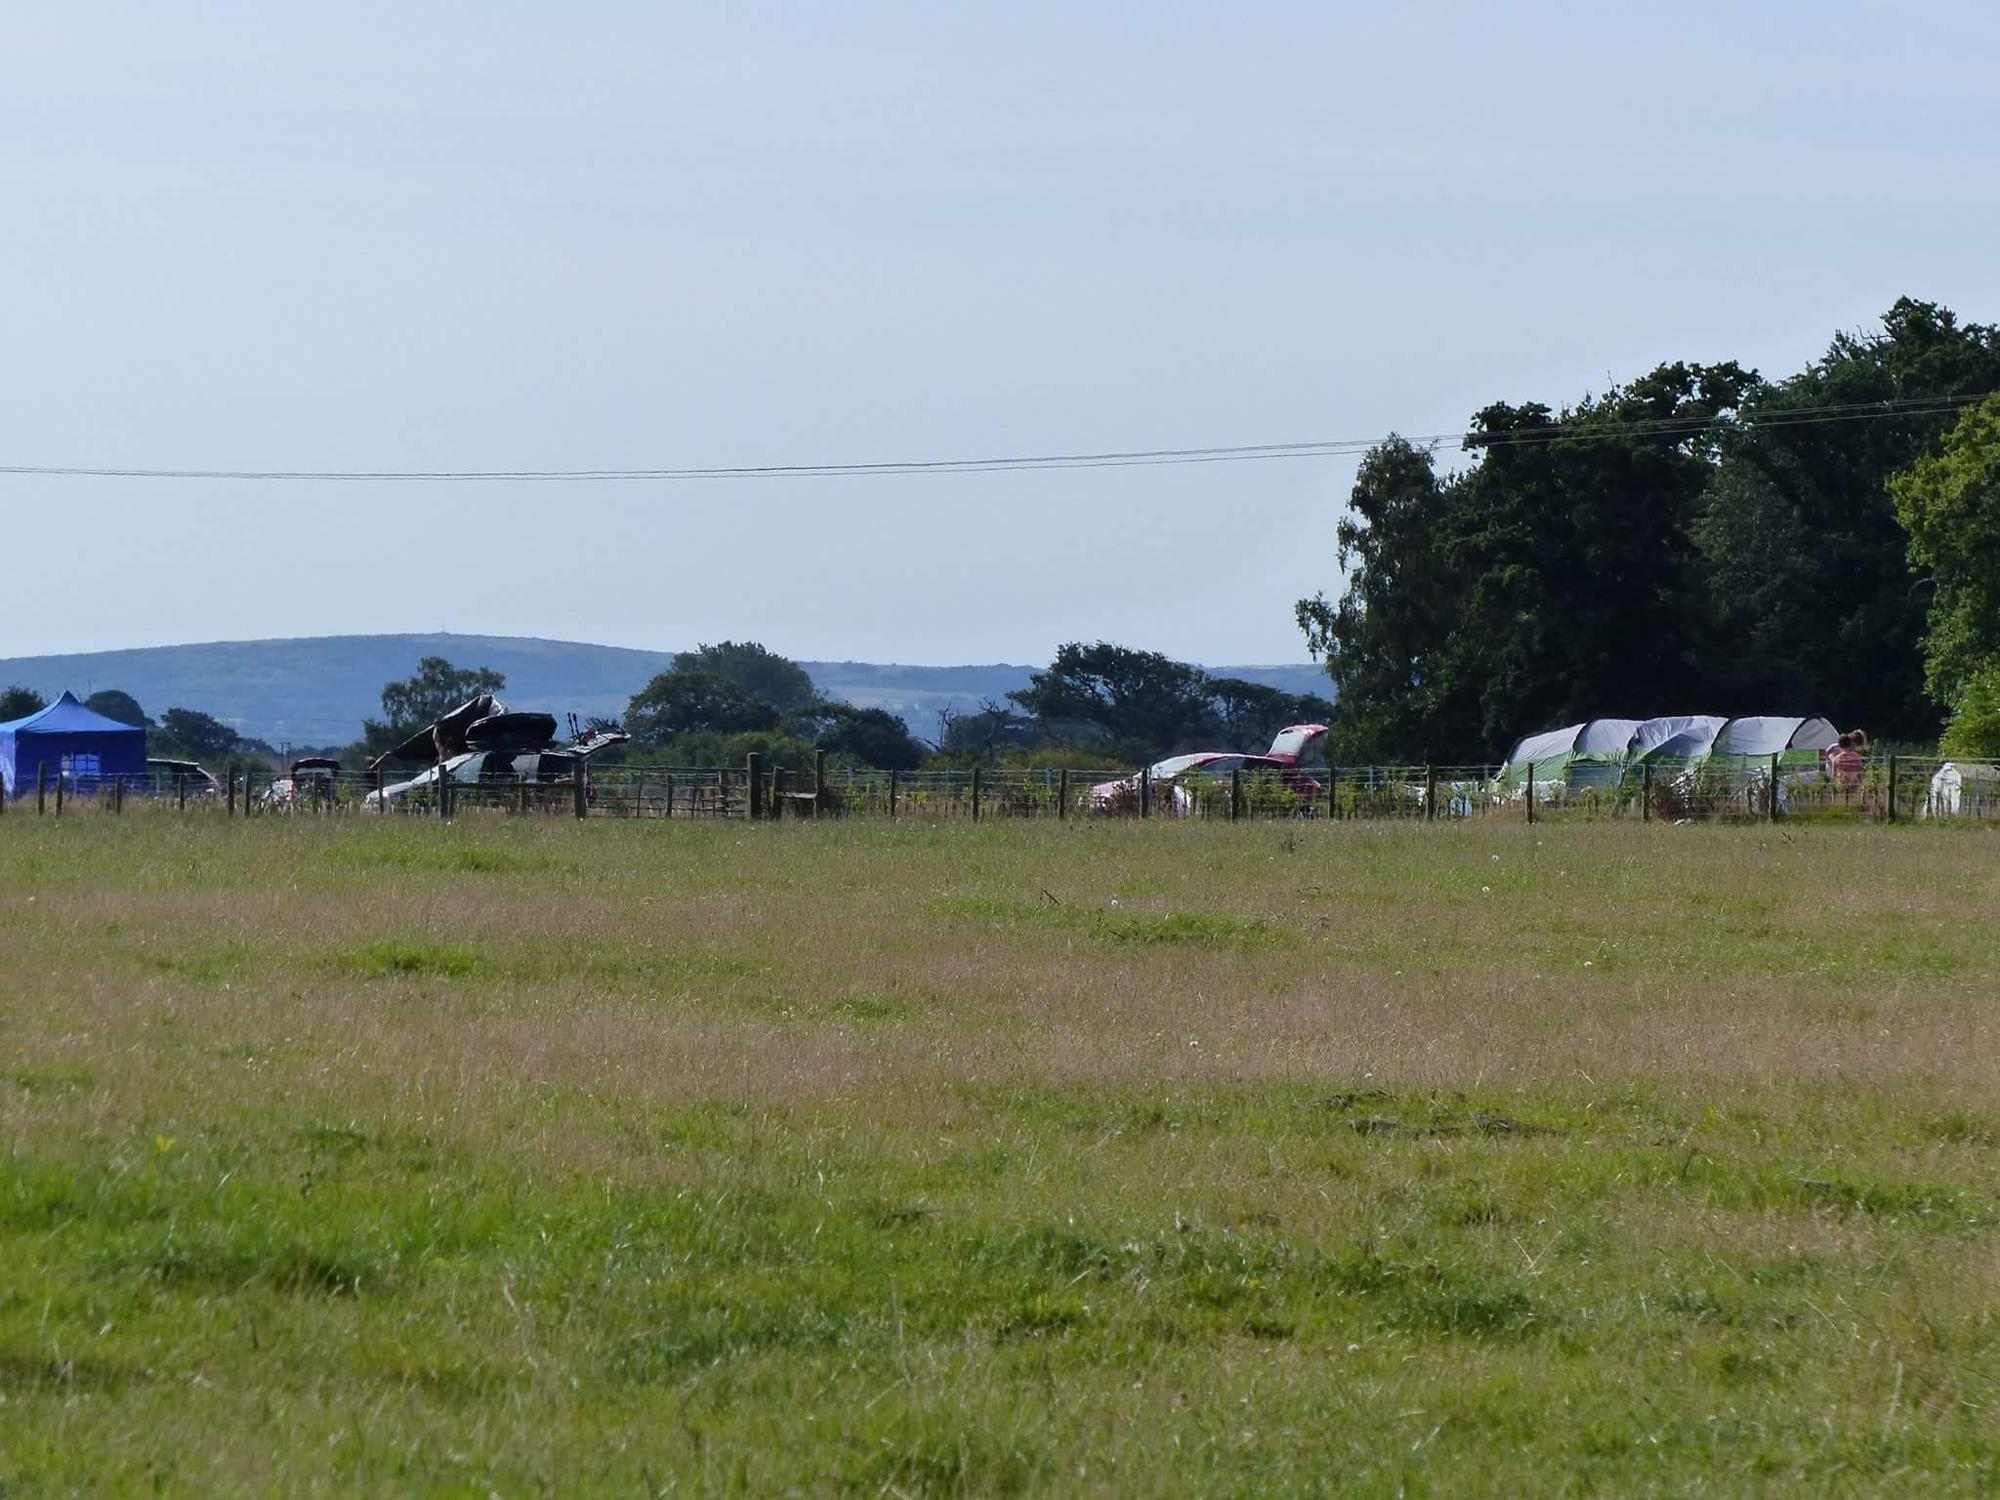 Pitch your tent wherever you like at this New Forest sheep farm campsite.